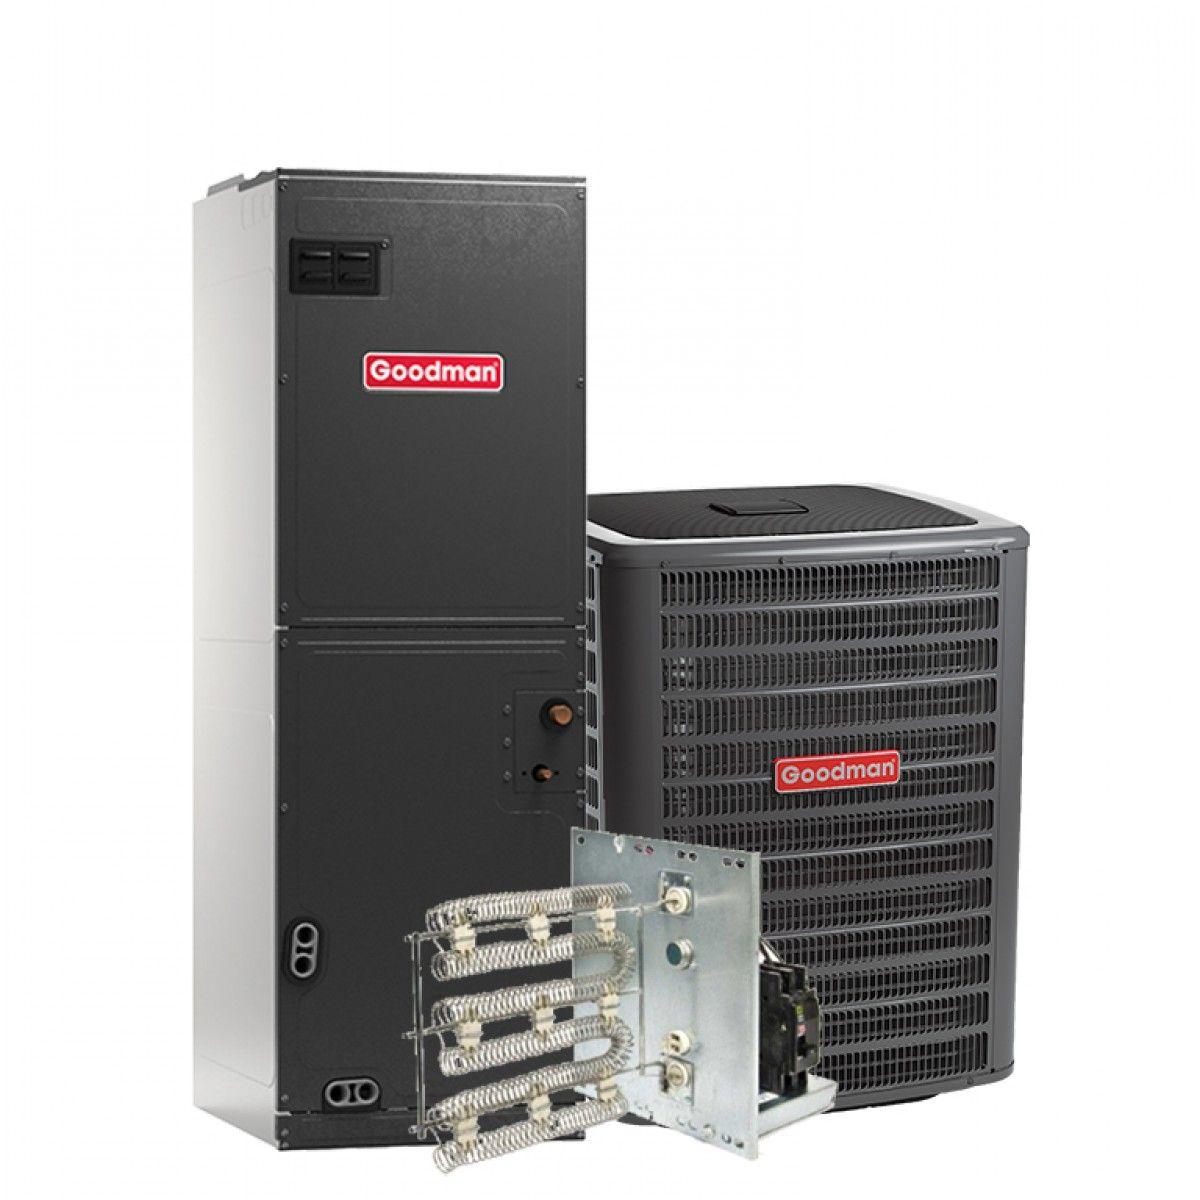 Goodman 2 0 Ton 13 Seer Air Conditioning System With